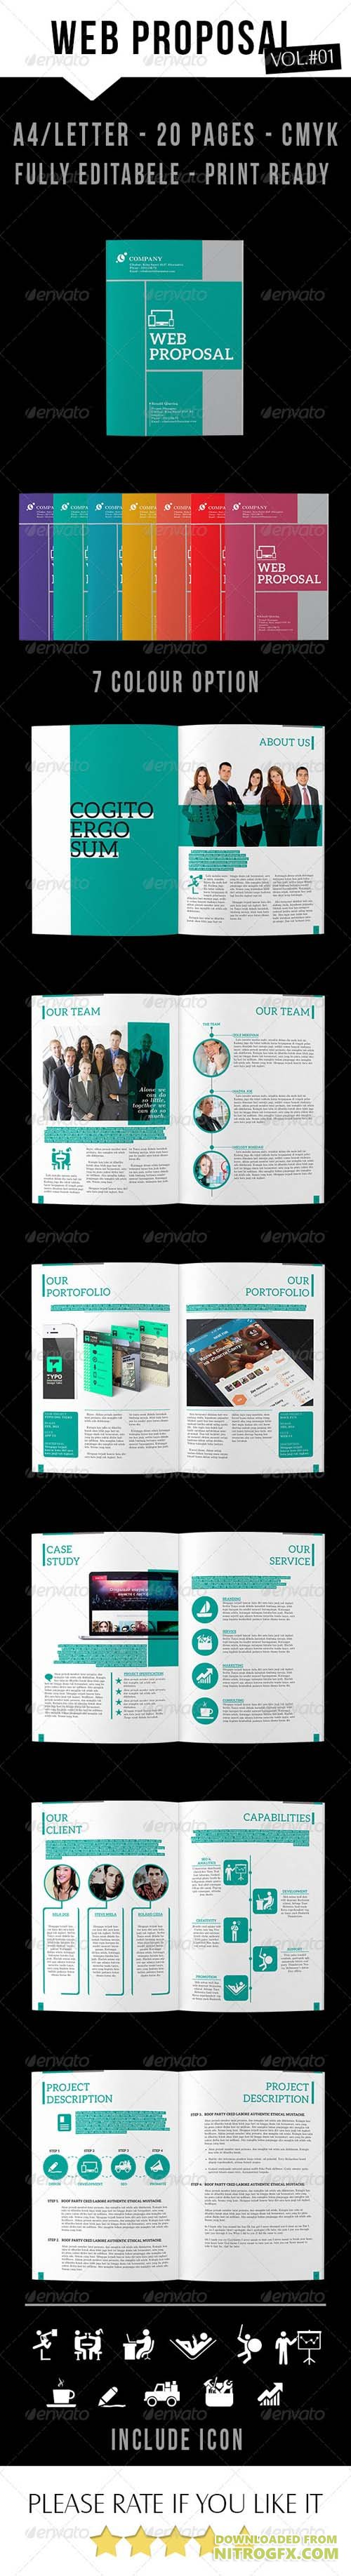 Clean Web Proposal InDesign 8028633